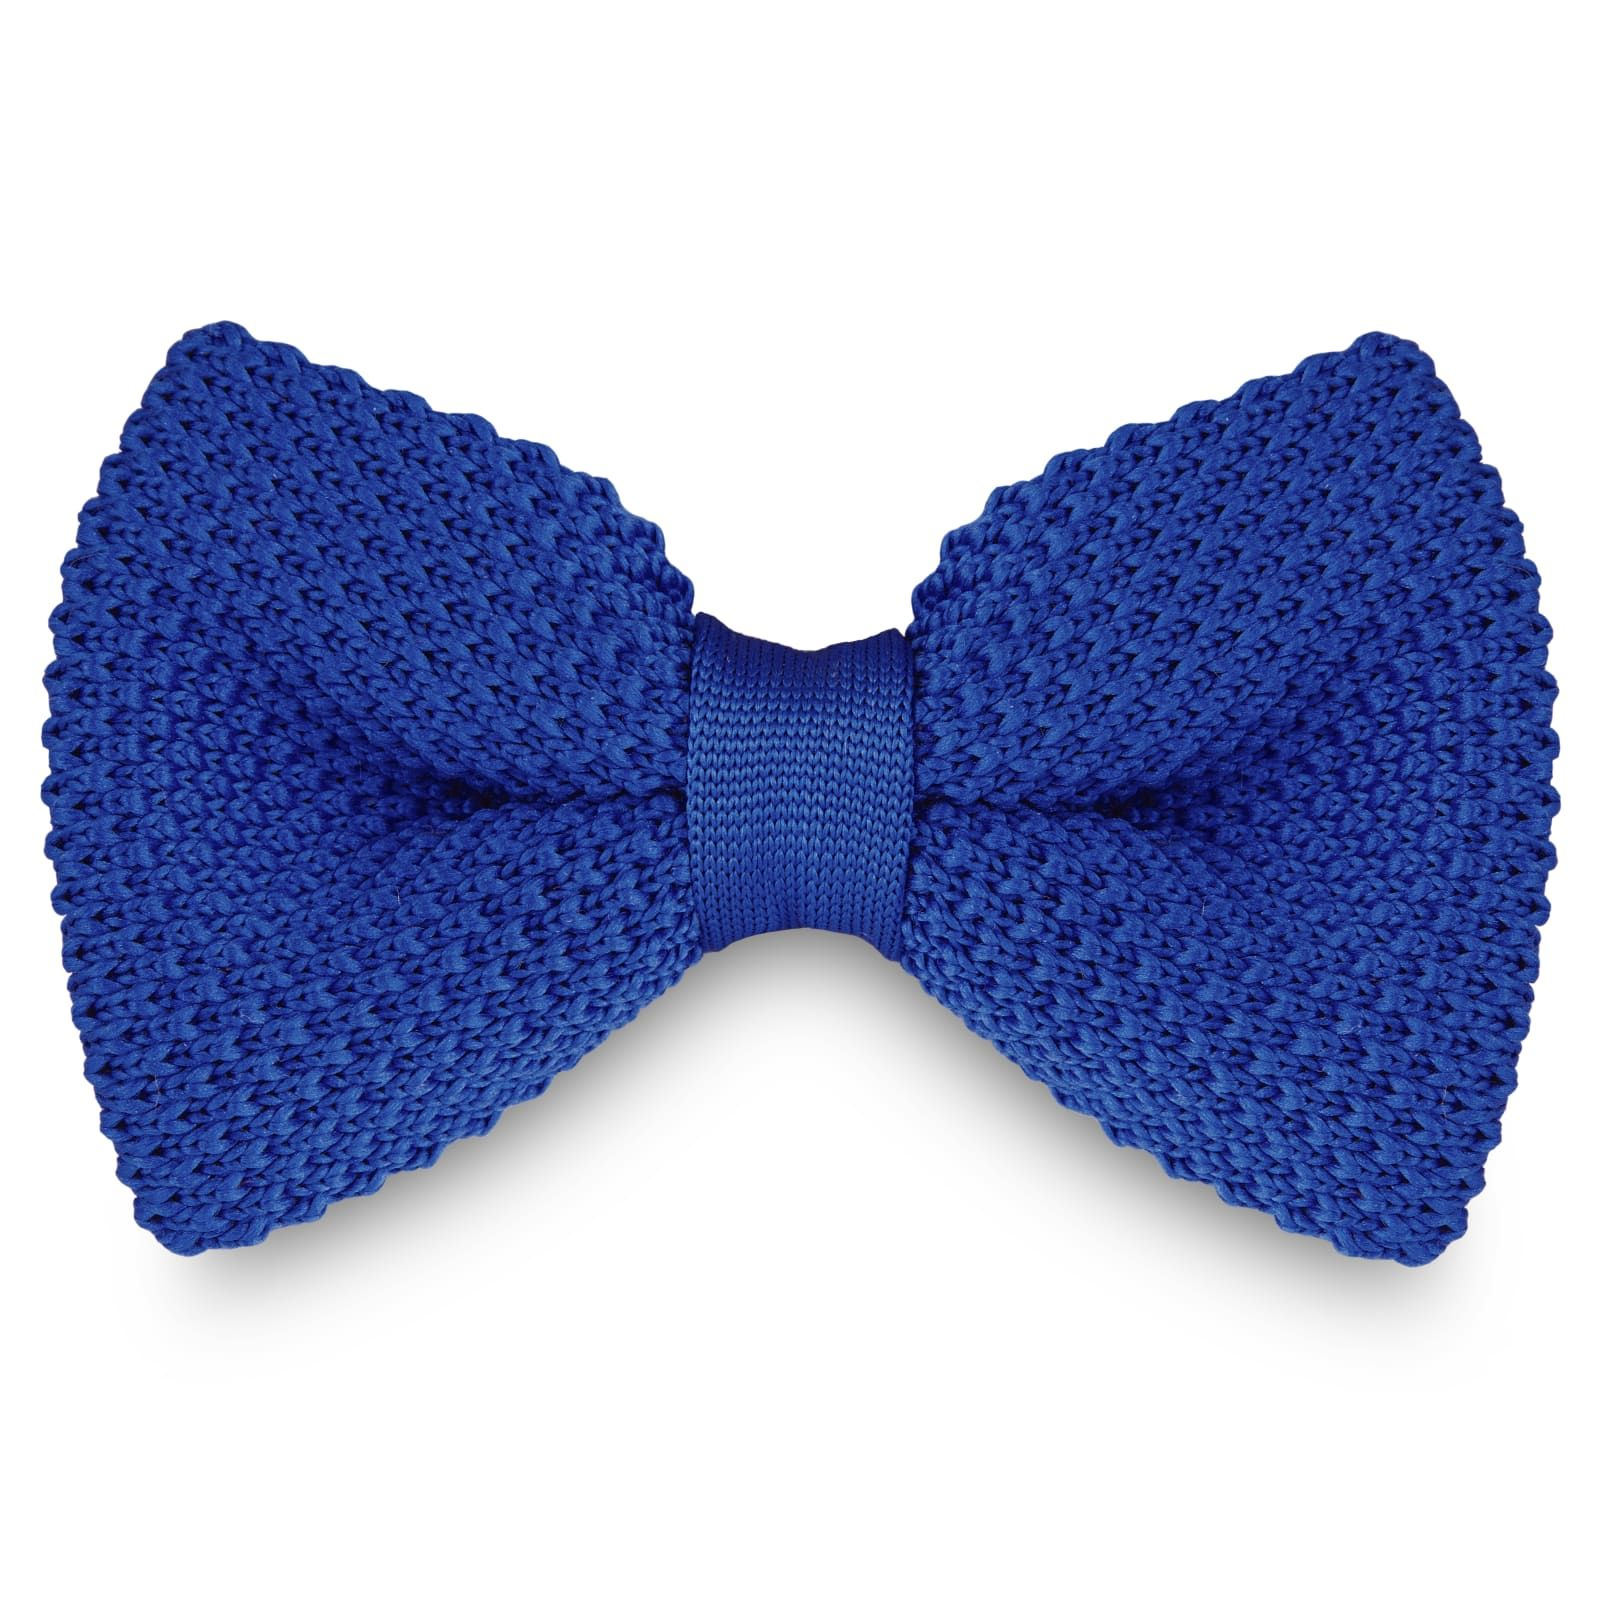 Blue Knitted Bow Tie | In stock! | Tailor Toki